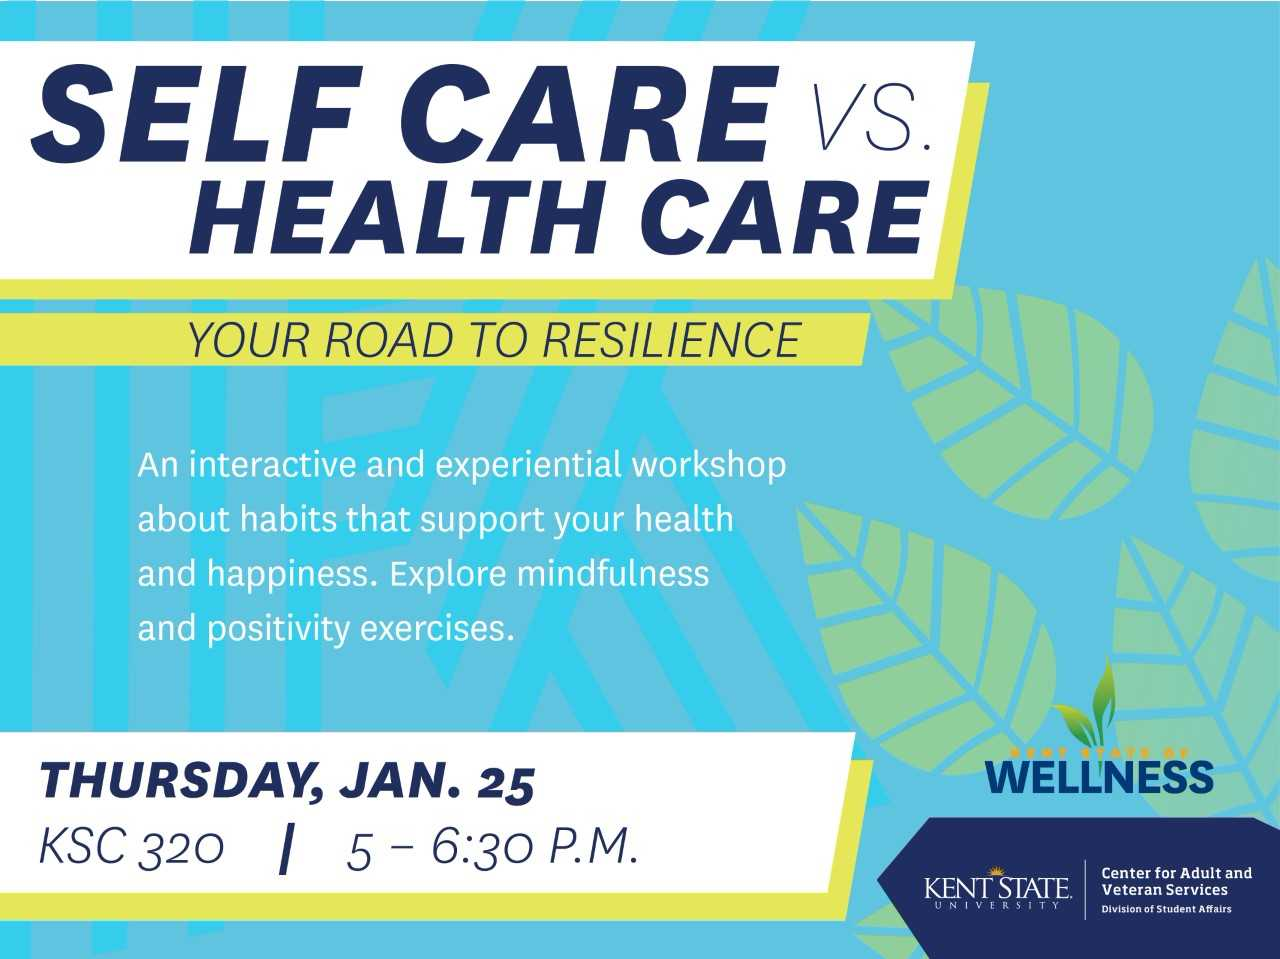 Self Care vs Health Care Flyer. Your road to resilience. An interactive and experiential workshop about habits that support your health and happiness. Explore mindfulness and positivity exercises. Thursday, Jan. 25, KSC 320, 5 to 6:30 p.m.